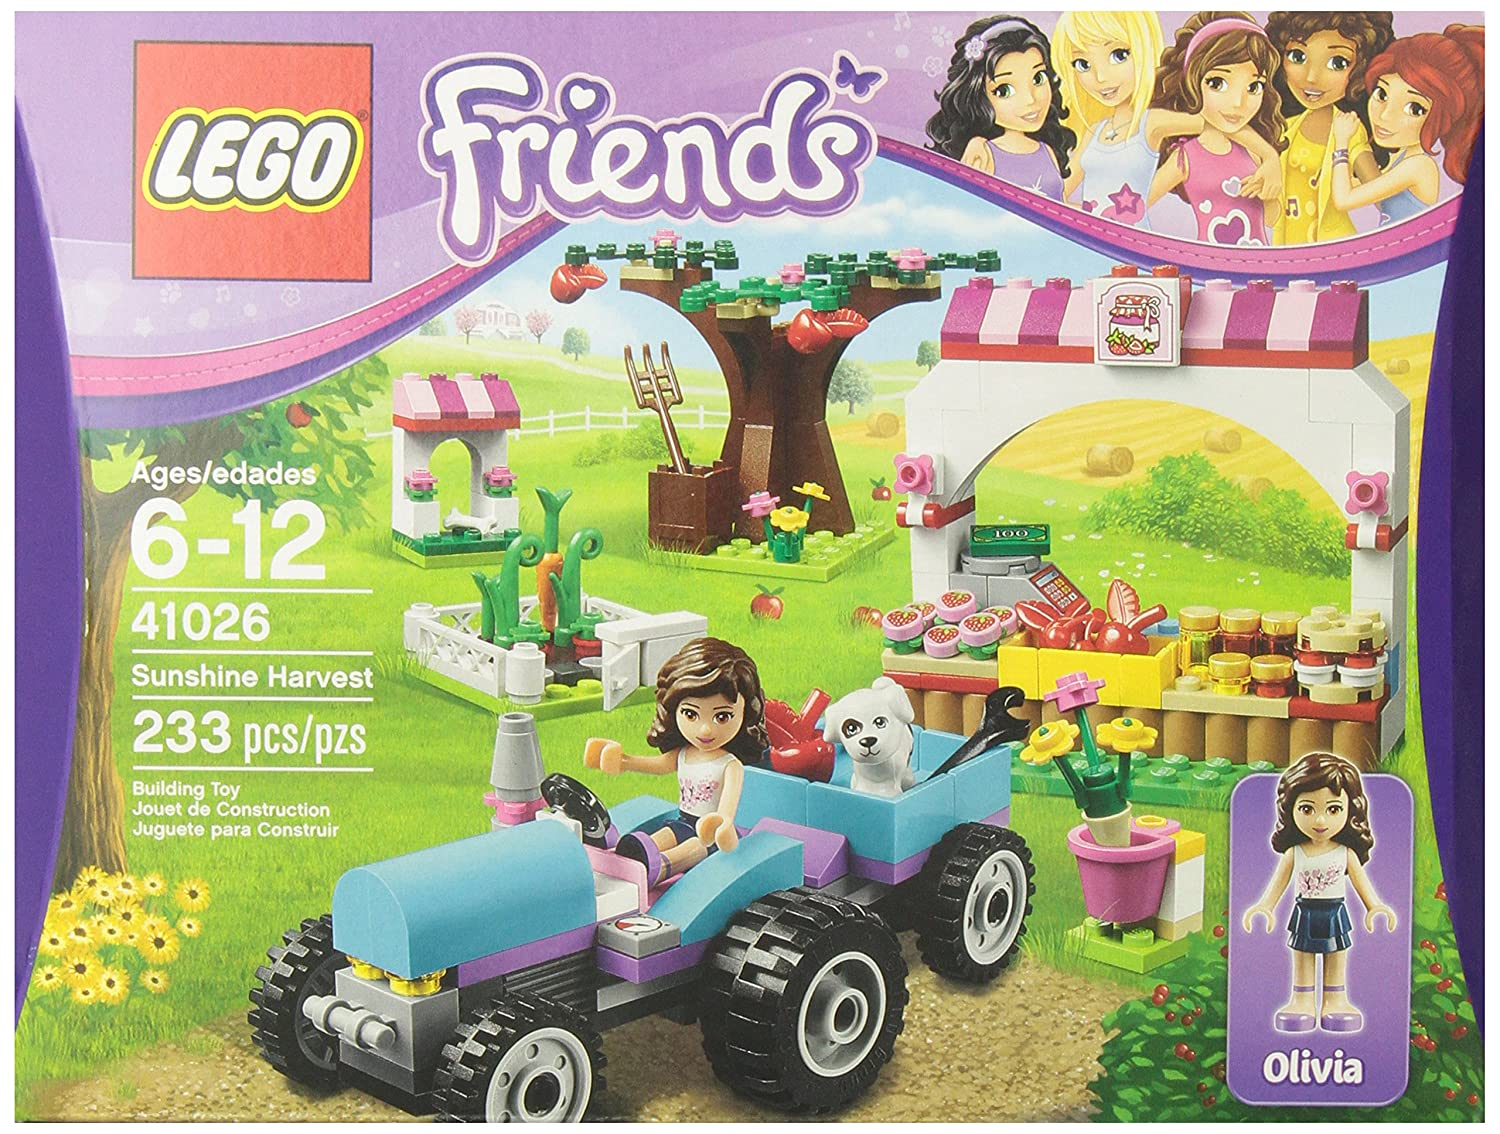 LEGO Friends 41026 Sunshine Harvest